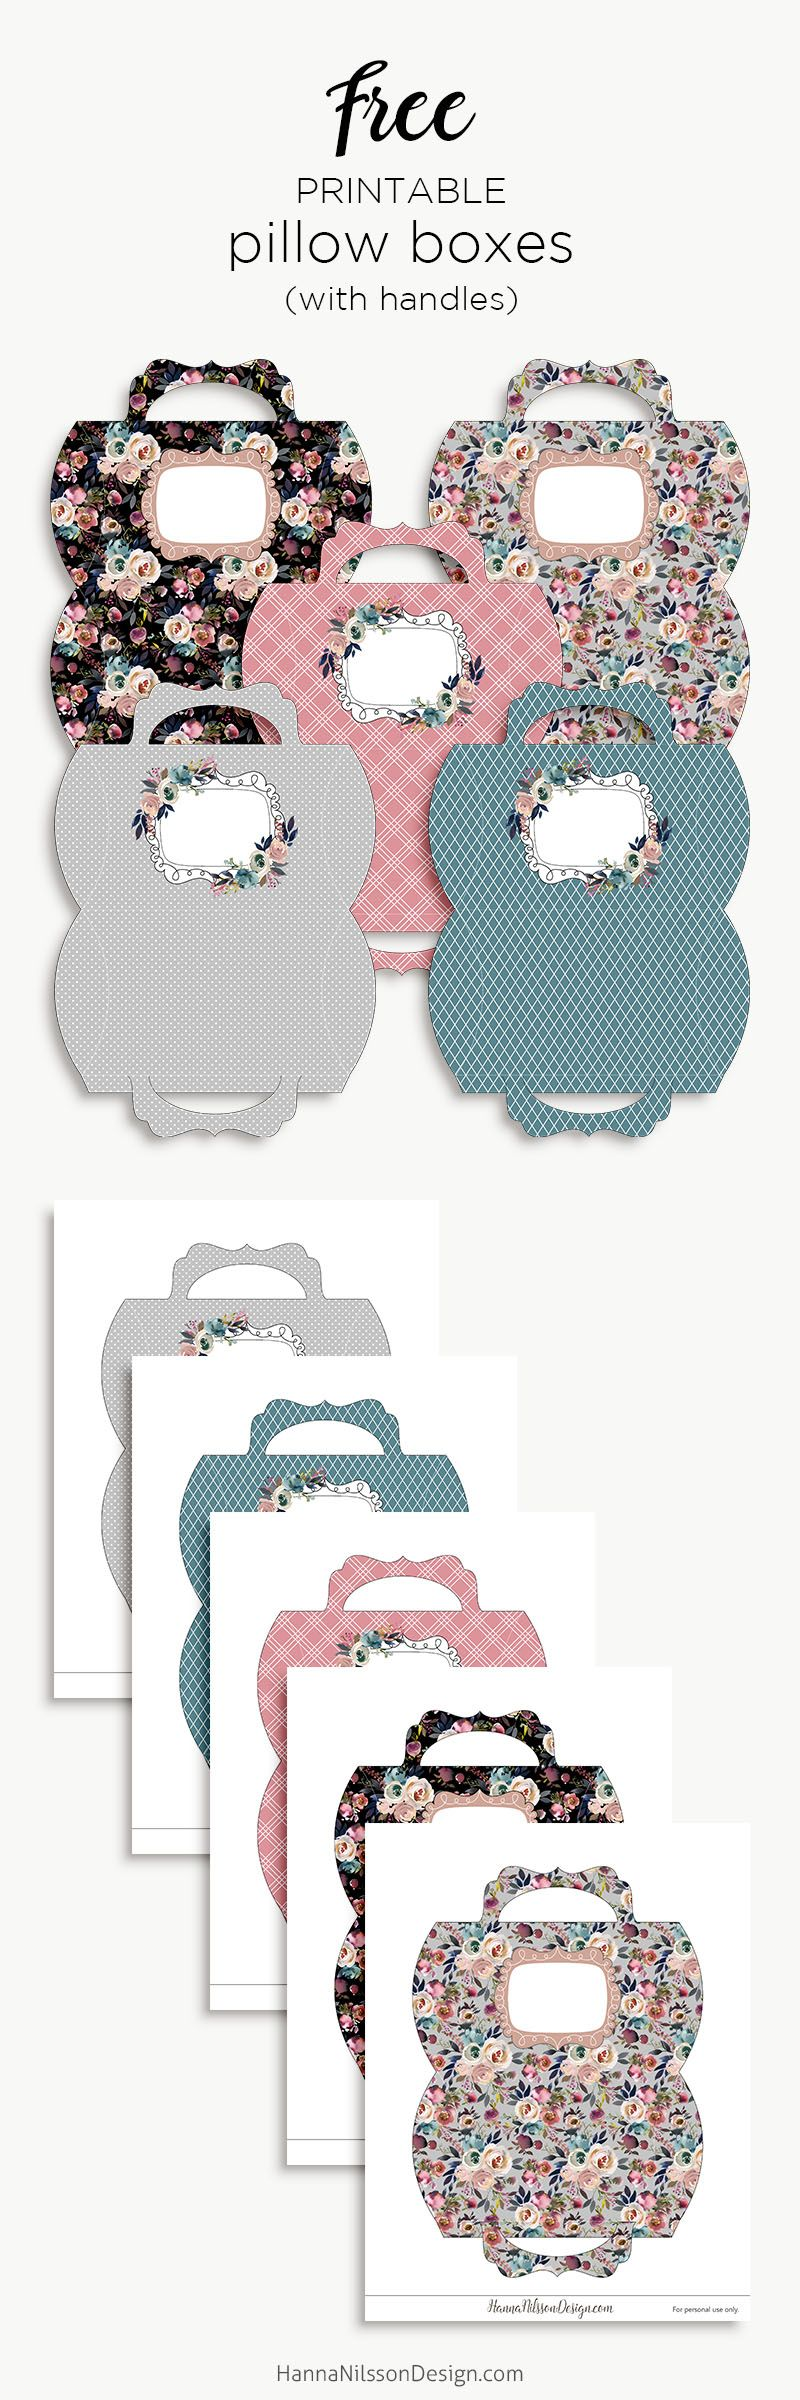 Floral pillow boxes with handle printable pillow boxes free